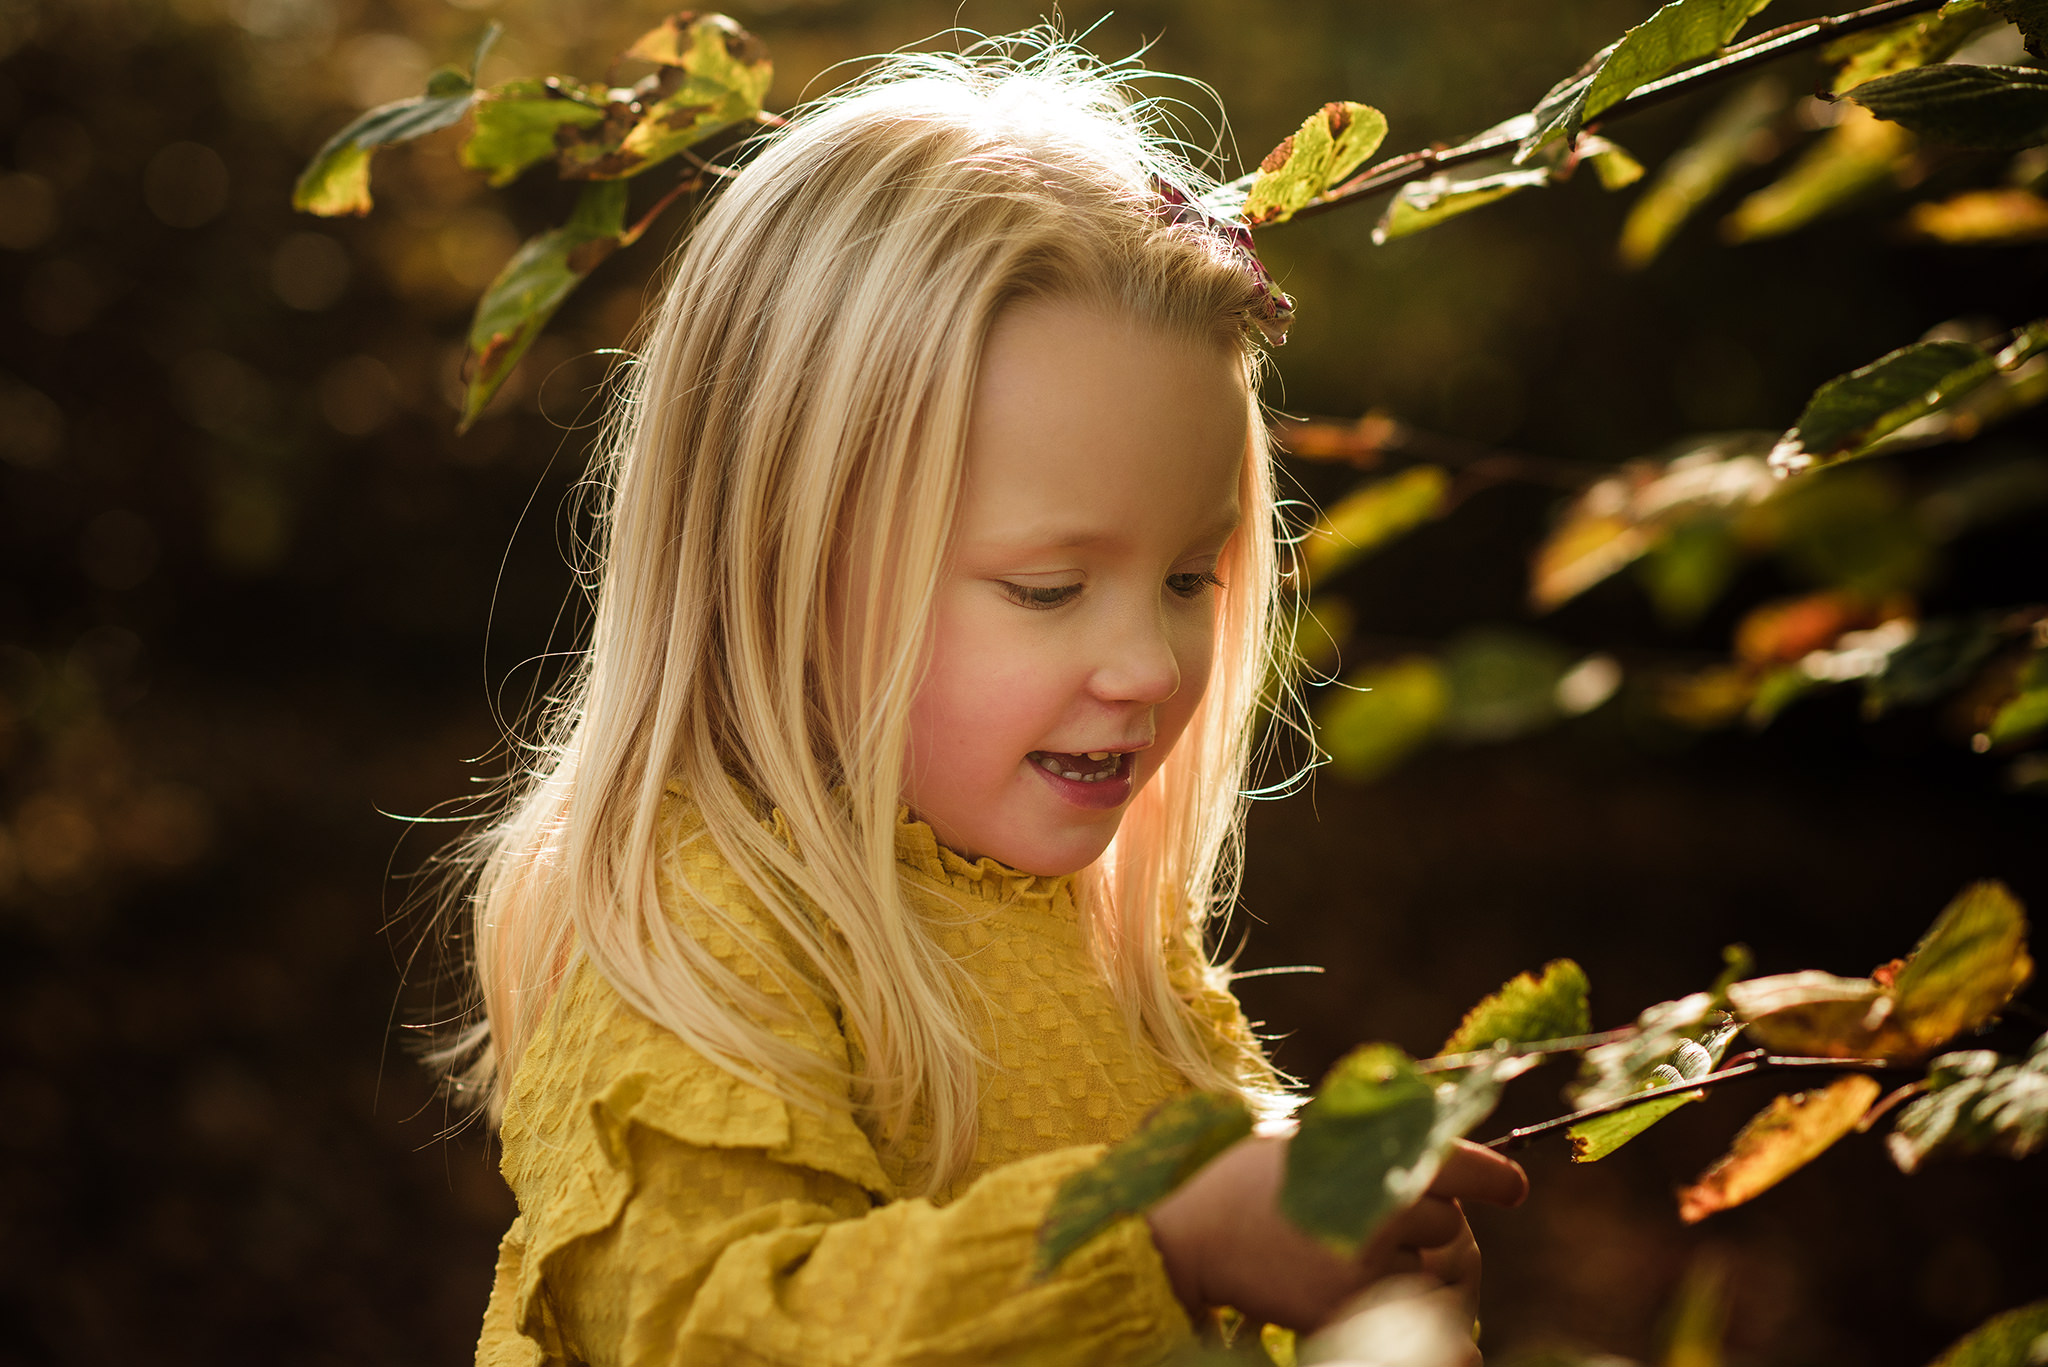 Little girl dressed in yellow looking at a branch with golden sunlight hitting the back of her head | Children's Photographer Aylesbury Buckinghamshire and Thame Oxfordshire